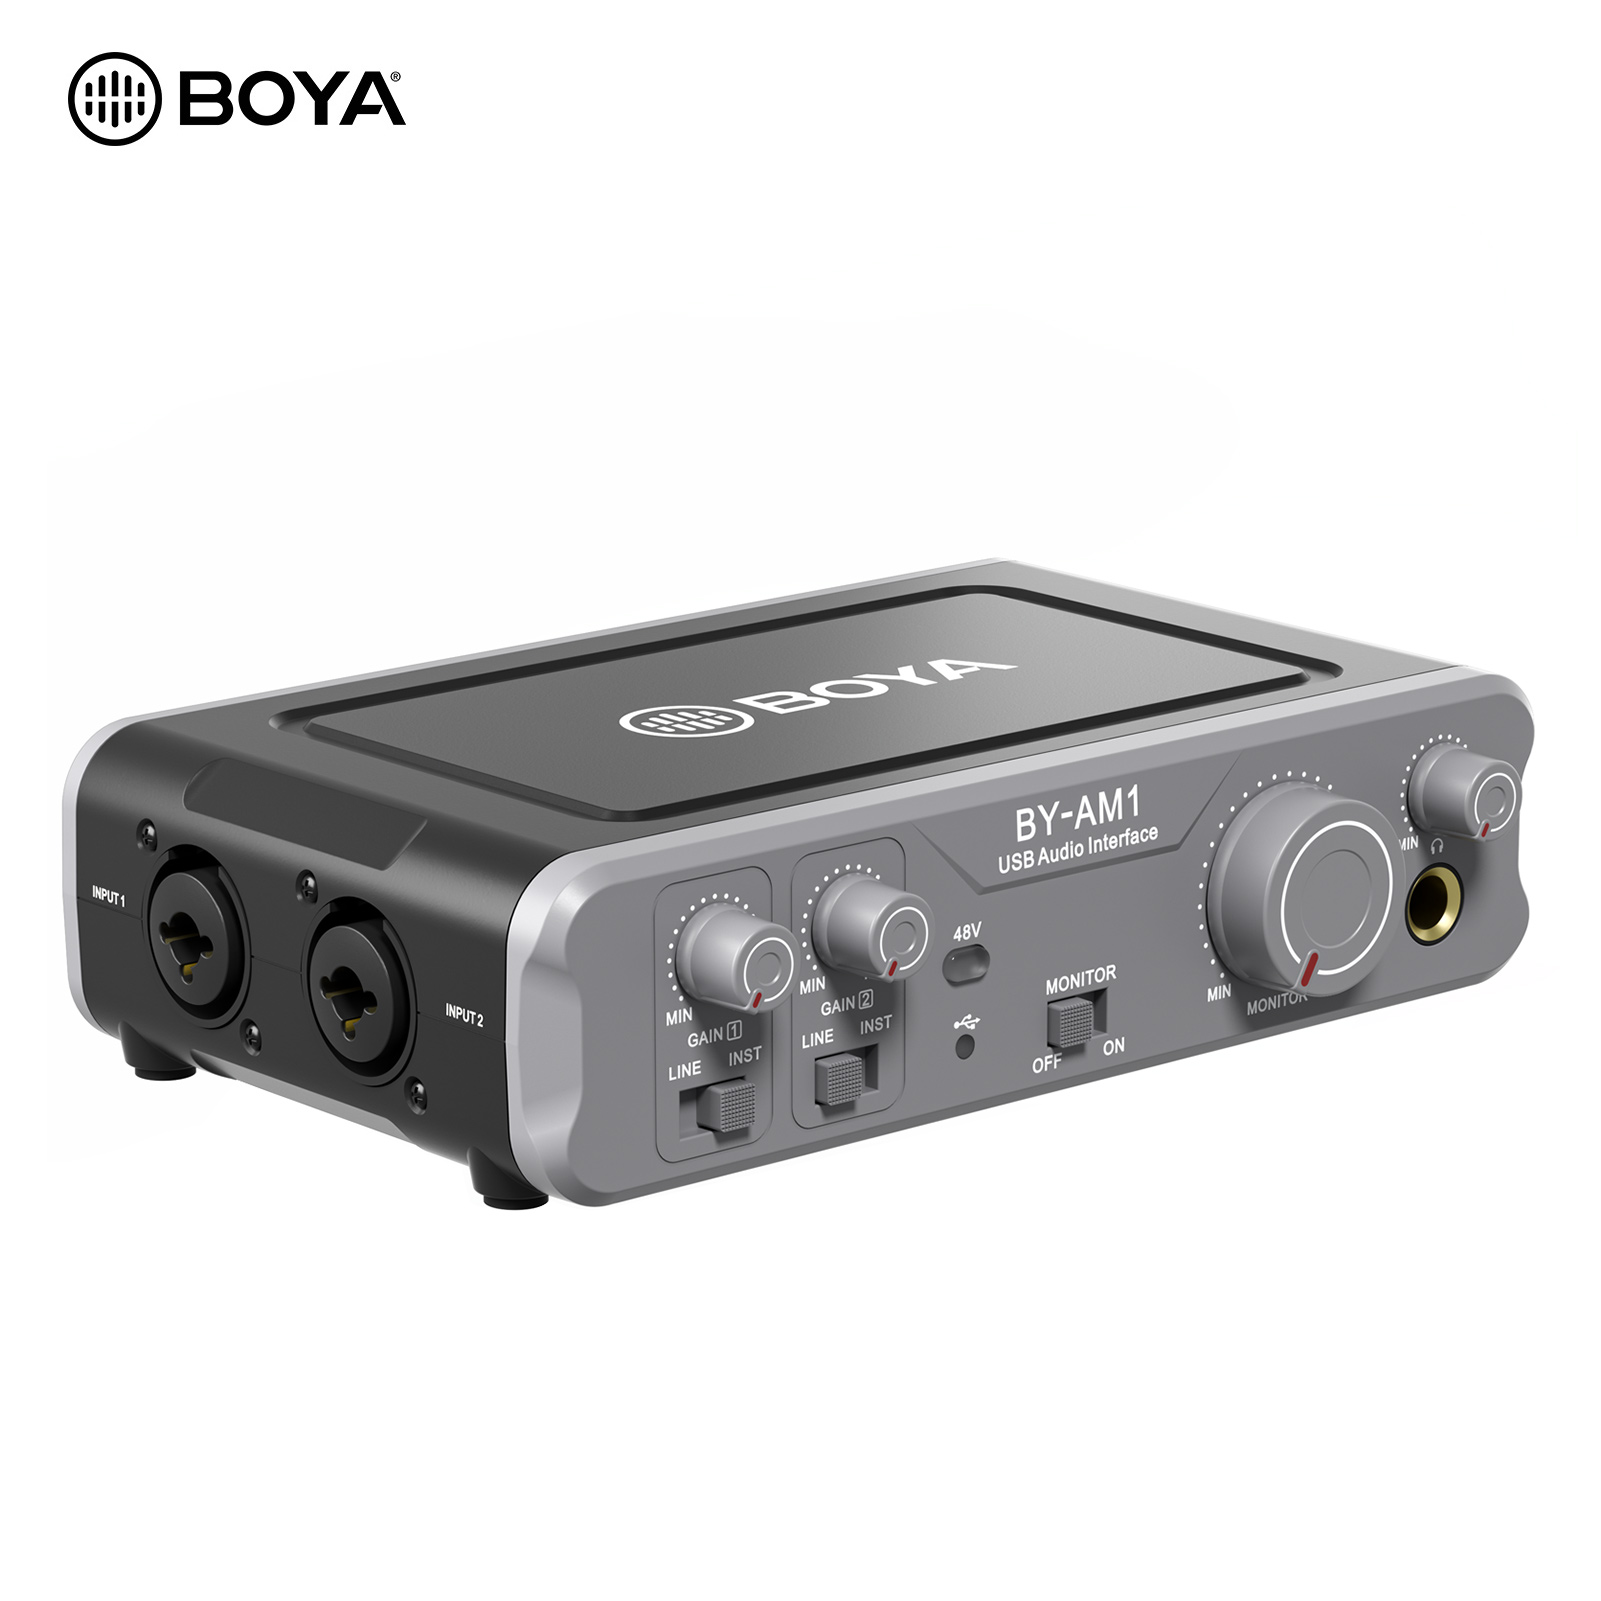 BOYA BY-AM1 Double Canal Mélangeur Audio Interface Audio USB avec 6.35mm/XLR Entrées Combo pour L'enregistrement Audio En Direct